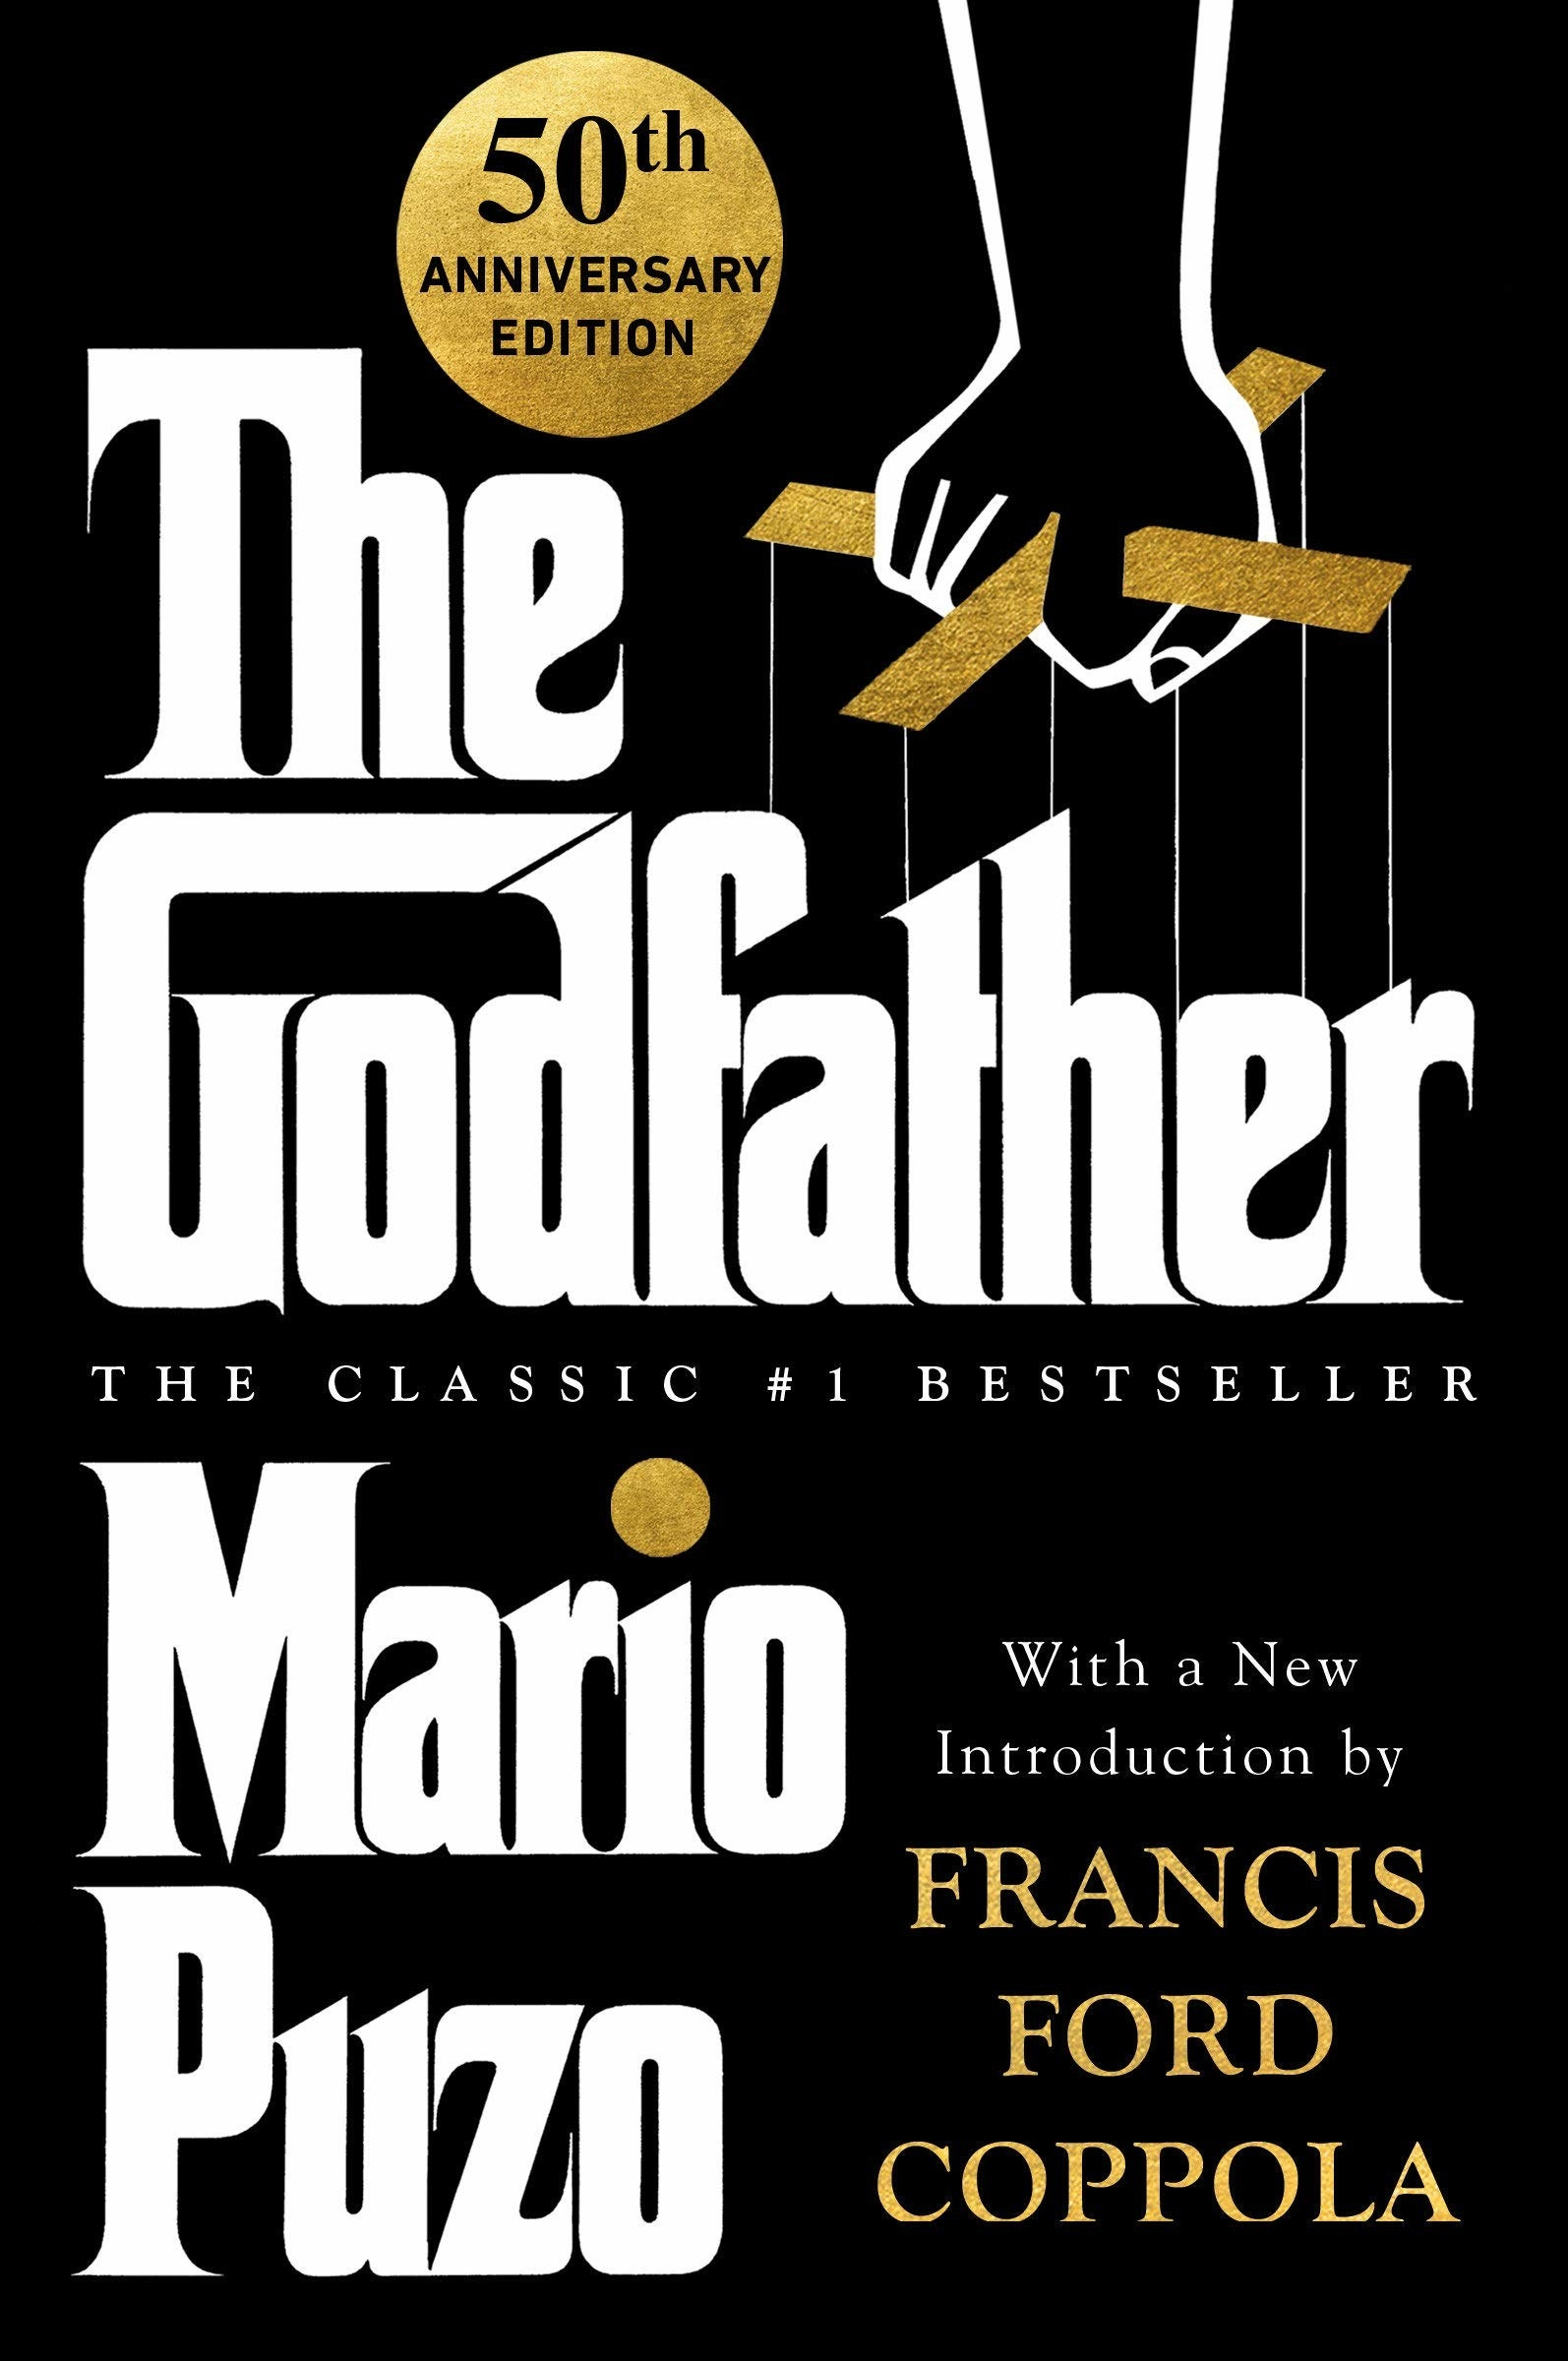 The cover of The Godfather by Mario Puzo